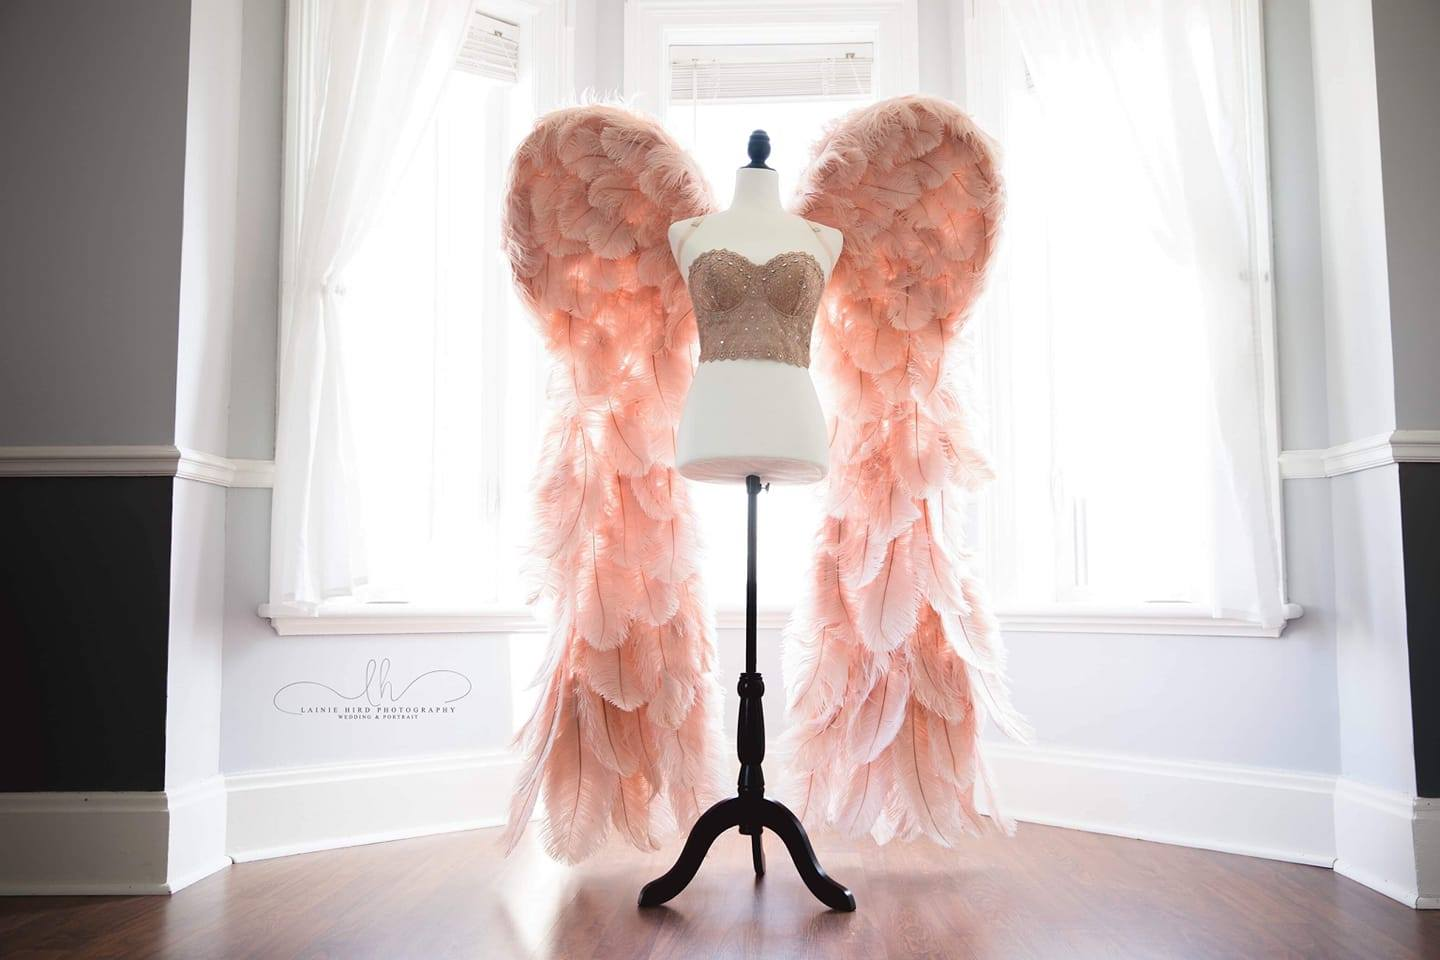 Win first access! - In order to be eligible to win first access to the Angel Wings valued at $300 (add-on to regular session only),you need to complete the following three steps!